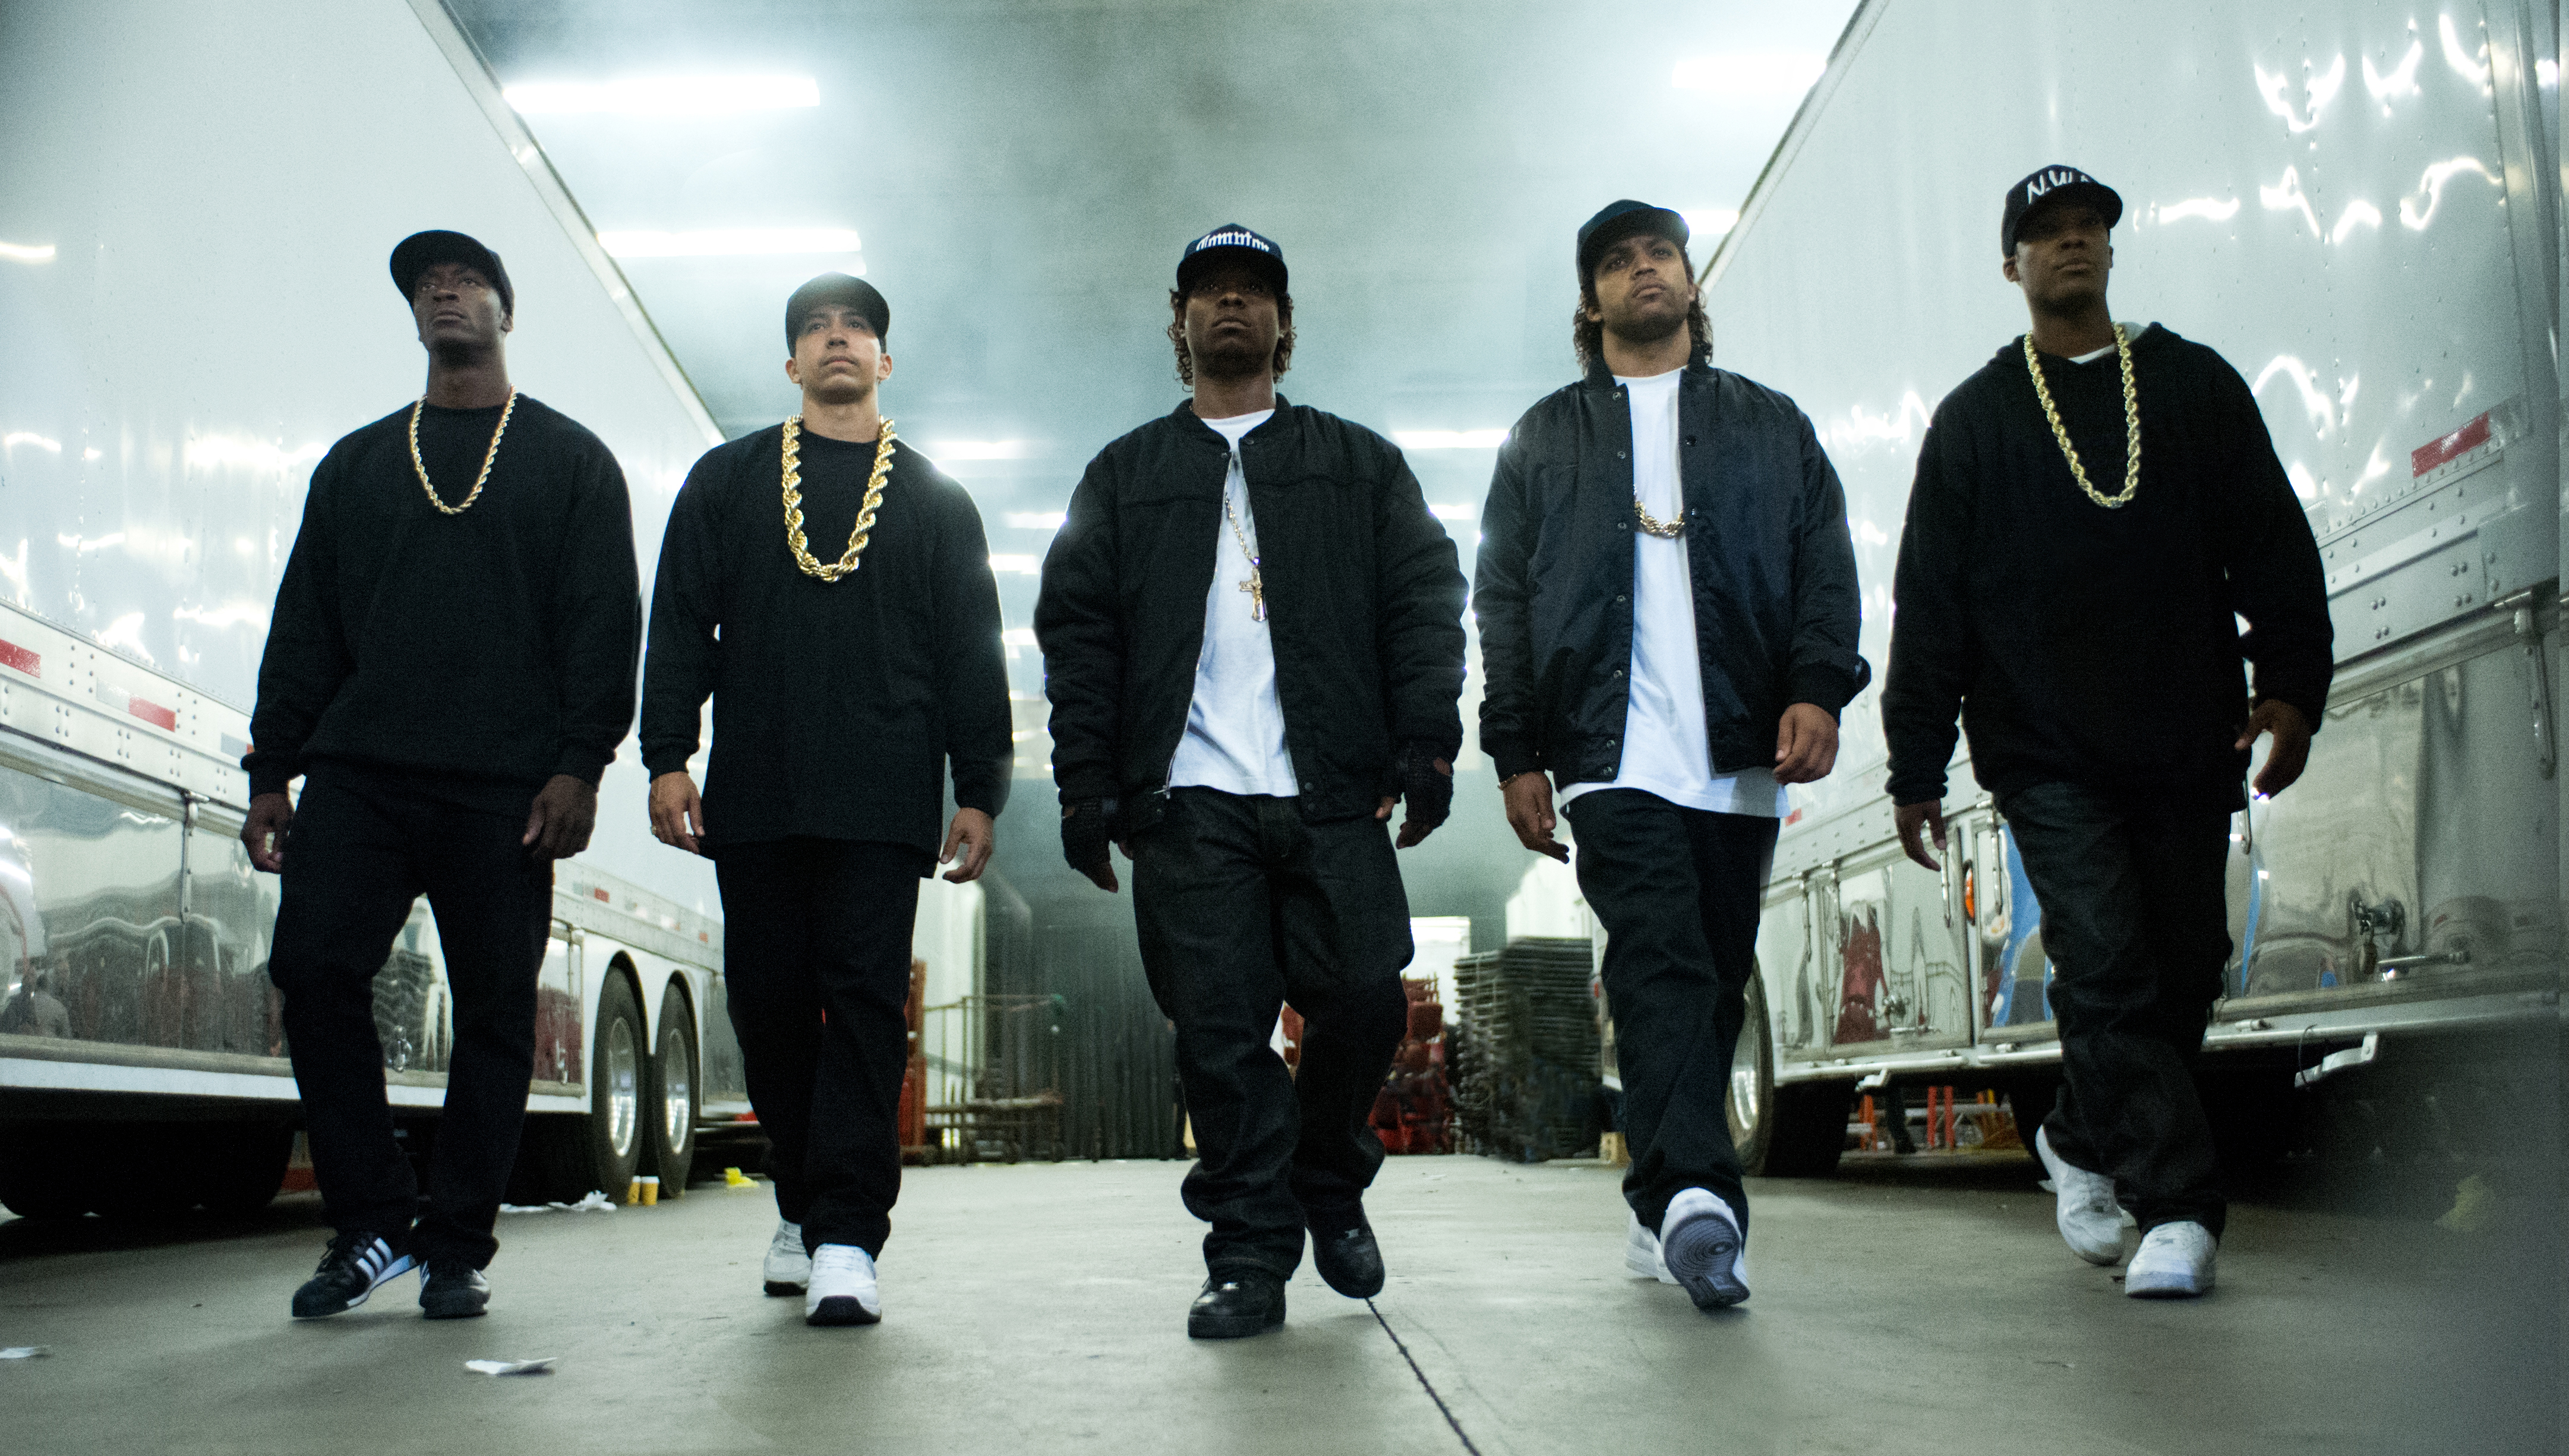 Universal Pictures' Straight Outta Compton